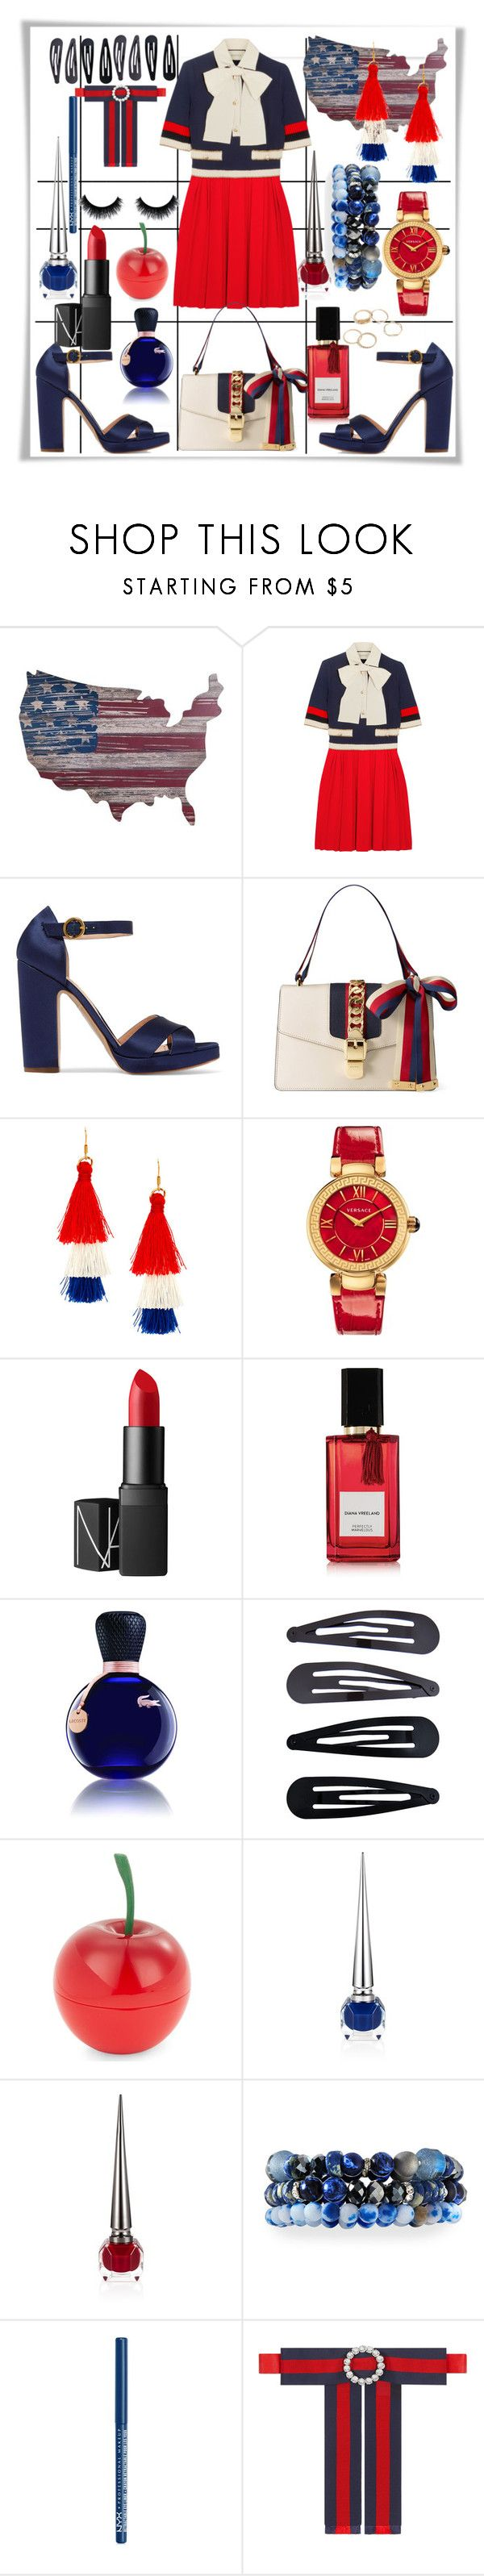 """""""Red n Blue"""" by smriti4520 ❤ liked on Polyvore featuring Gucci, Rupert Sanderson, Versace, NARS Cosmetics, Diana Vreeland Parfums, Lacoste, Accessorize, Tony Moly, Christian Louboutin and Lydell NYC"""